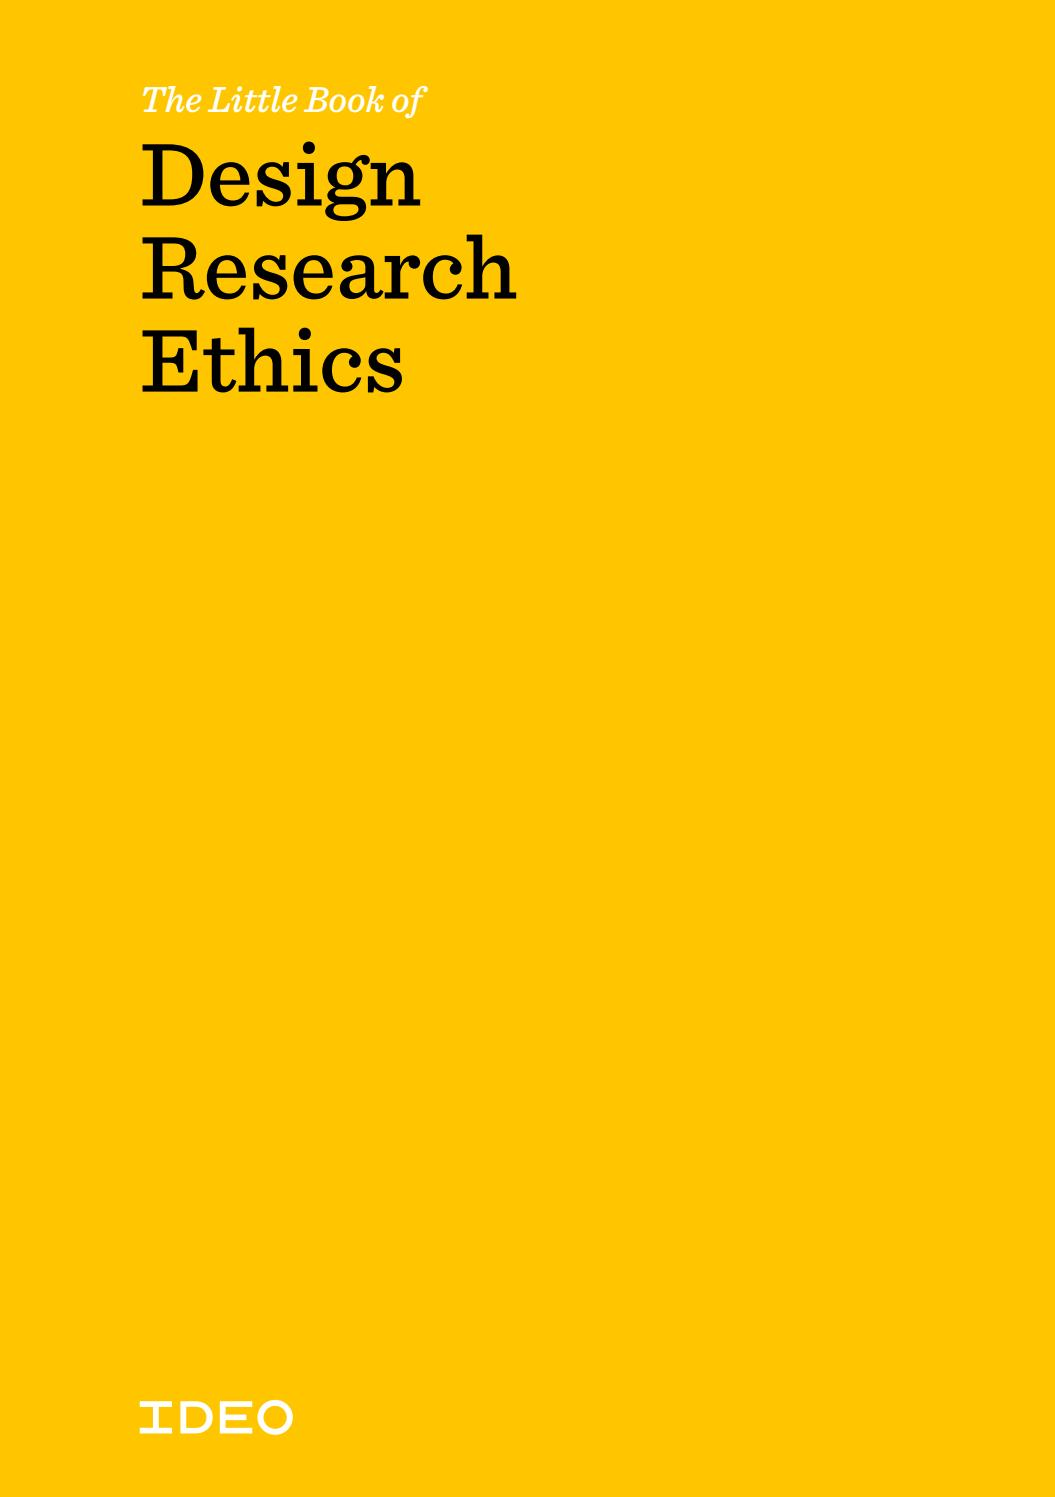 The Little Book of Design Research Ethics by IDEO